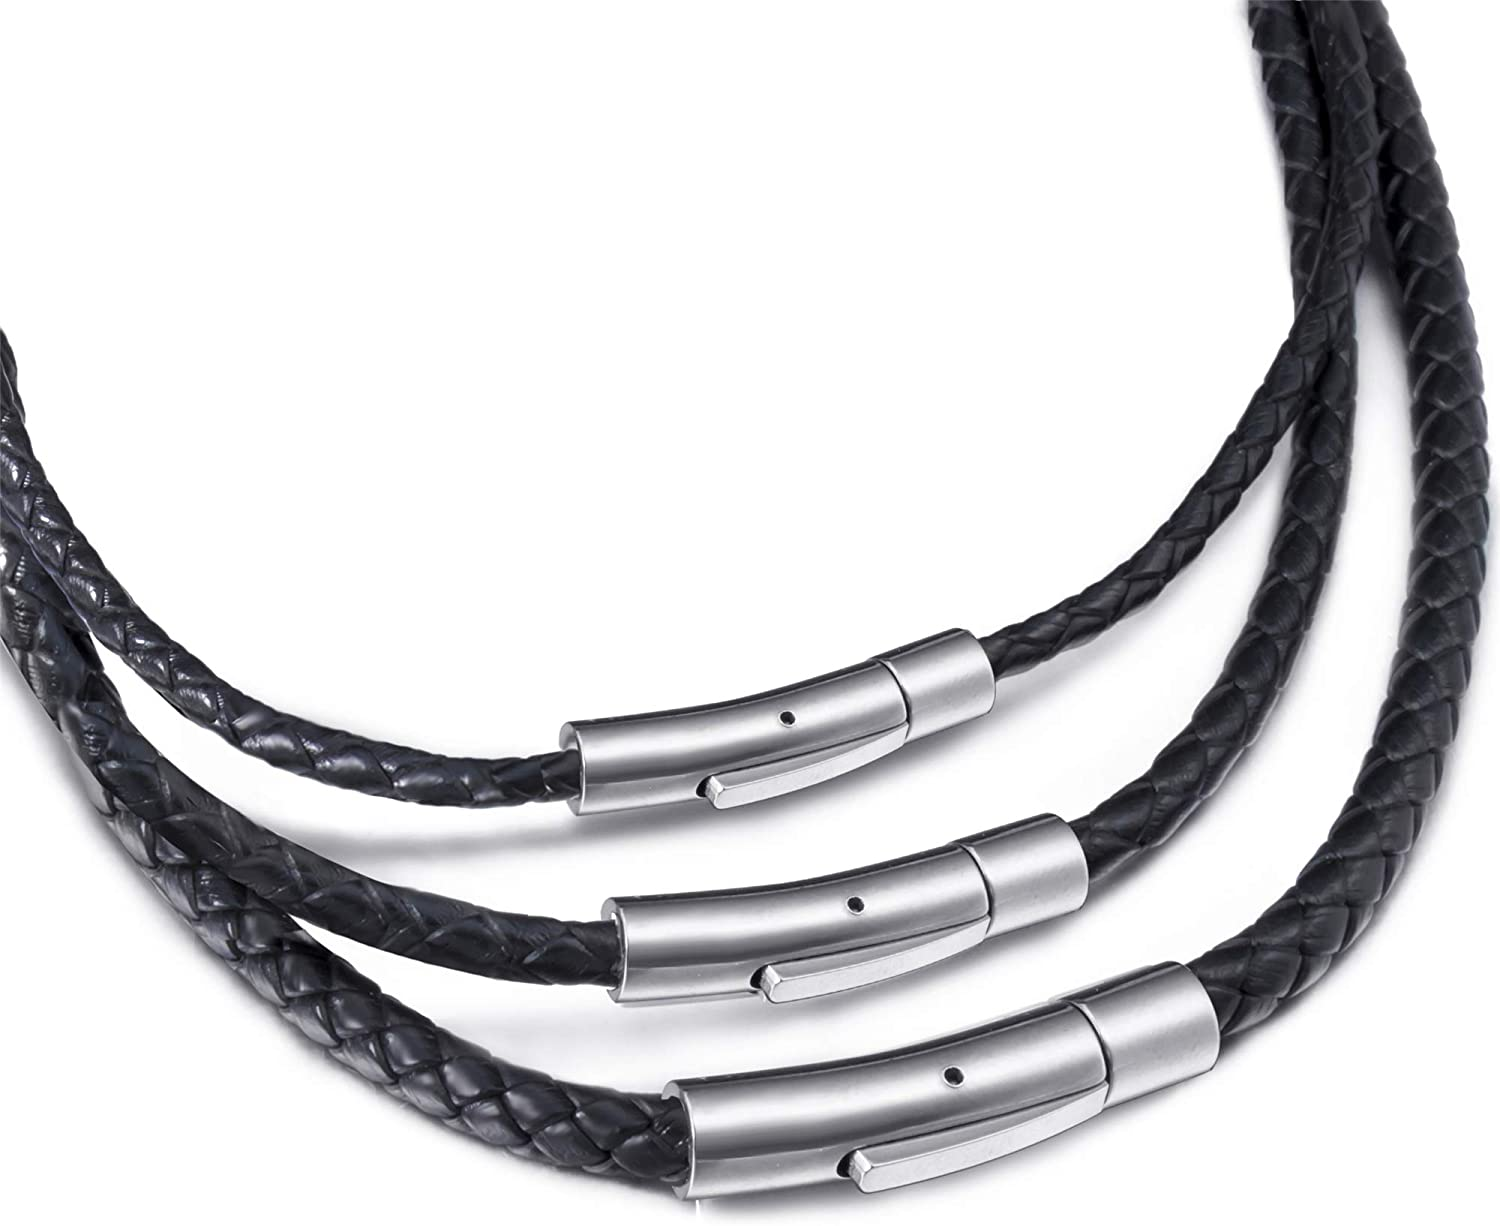 Elfasio Black Braided Leather Cord Rope Necklace Chain Stainless Steel Clasp 3/4/5mm 16-30 inch